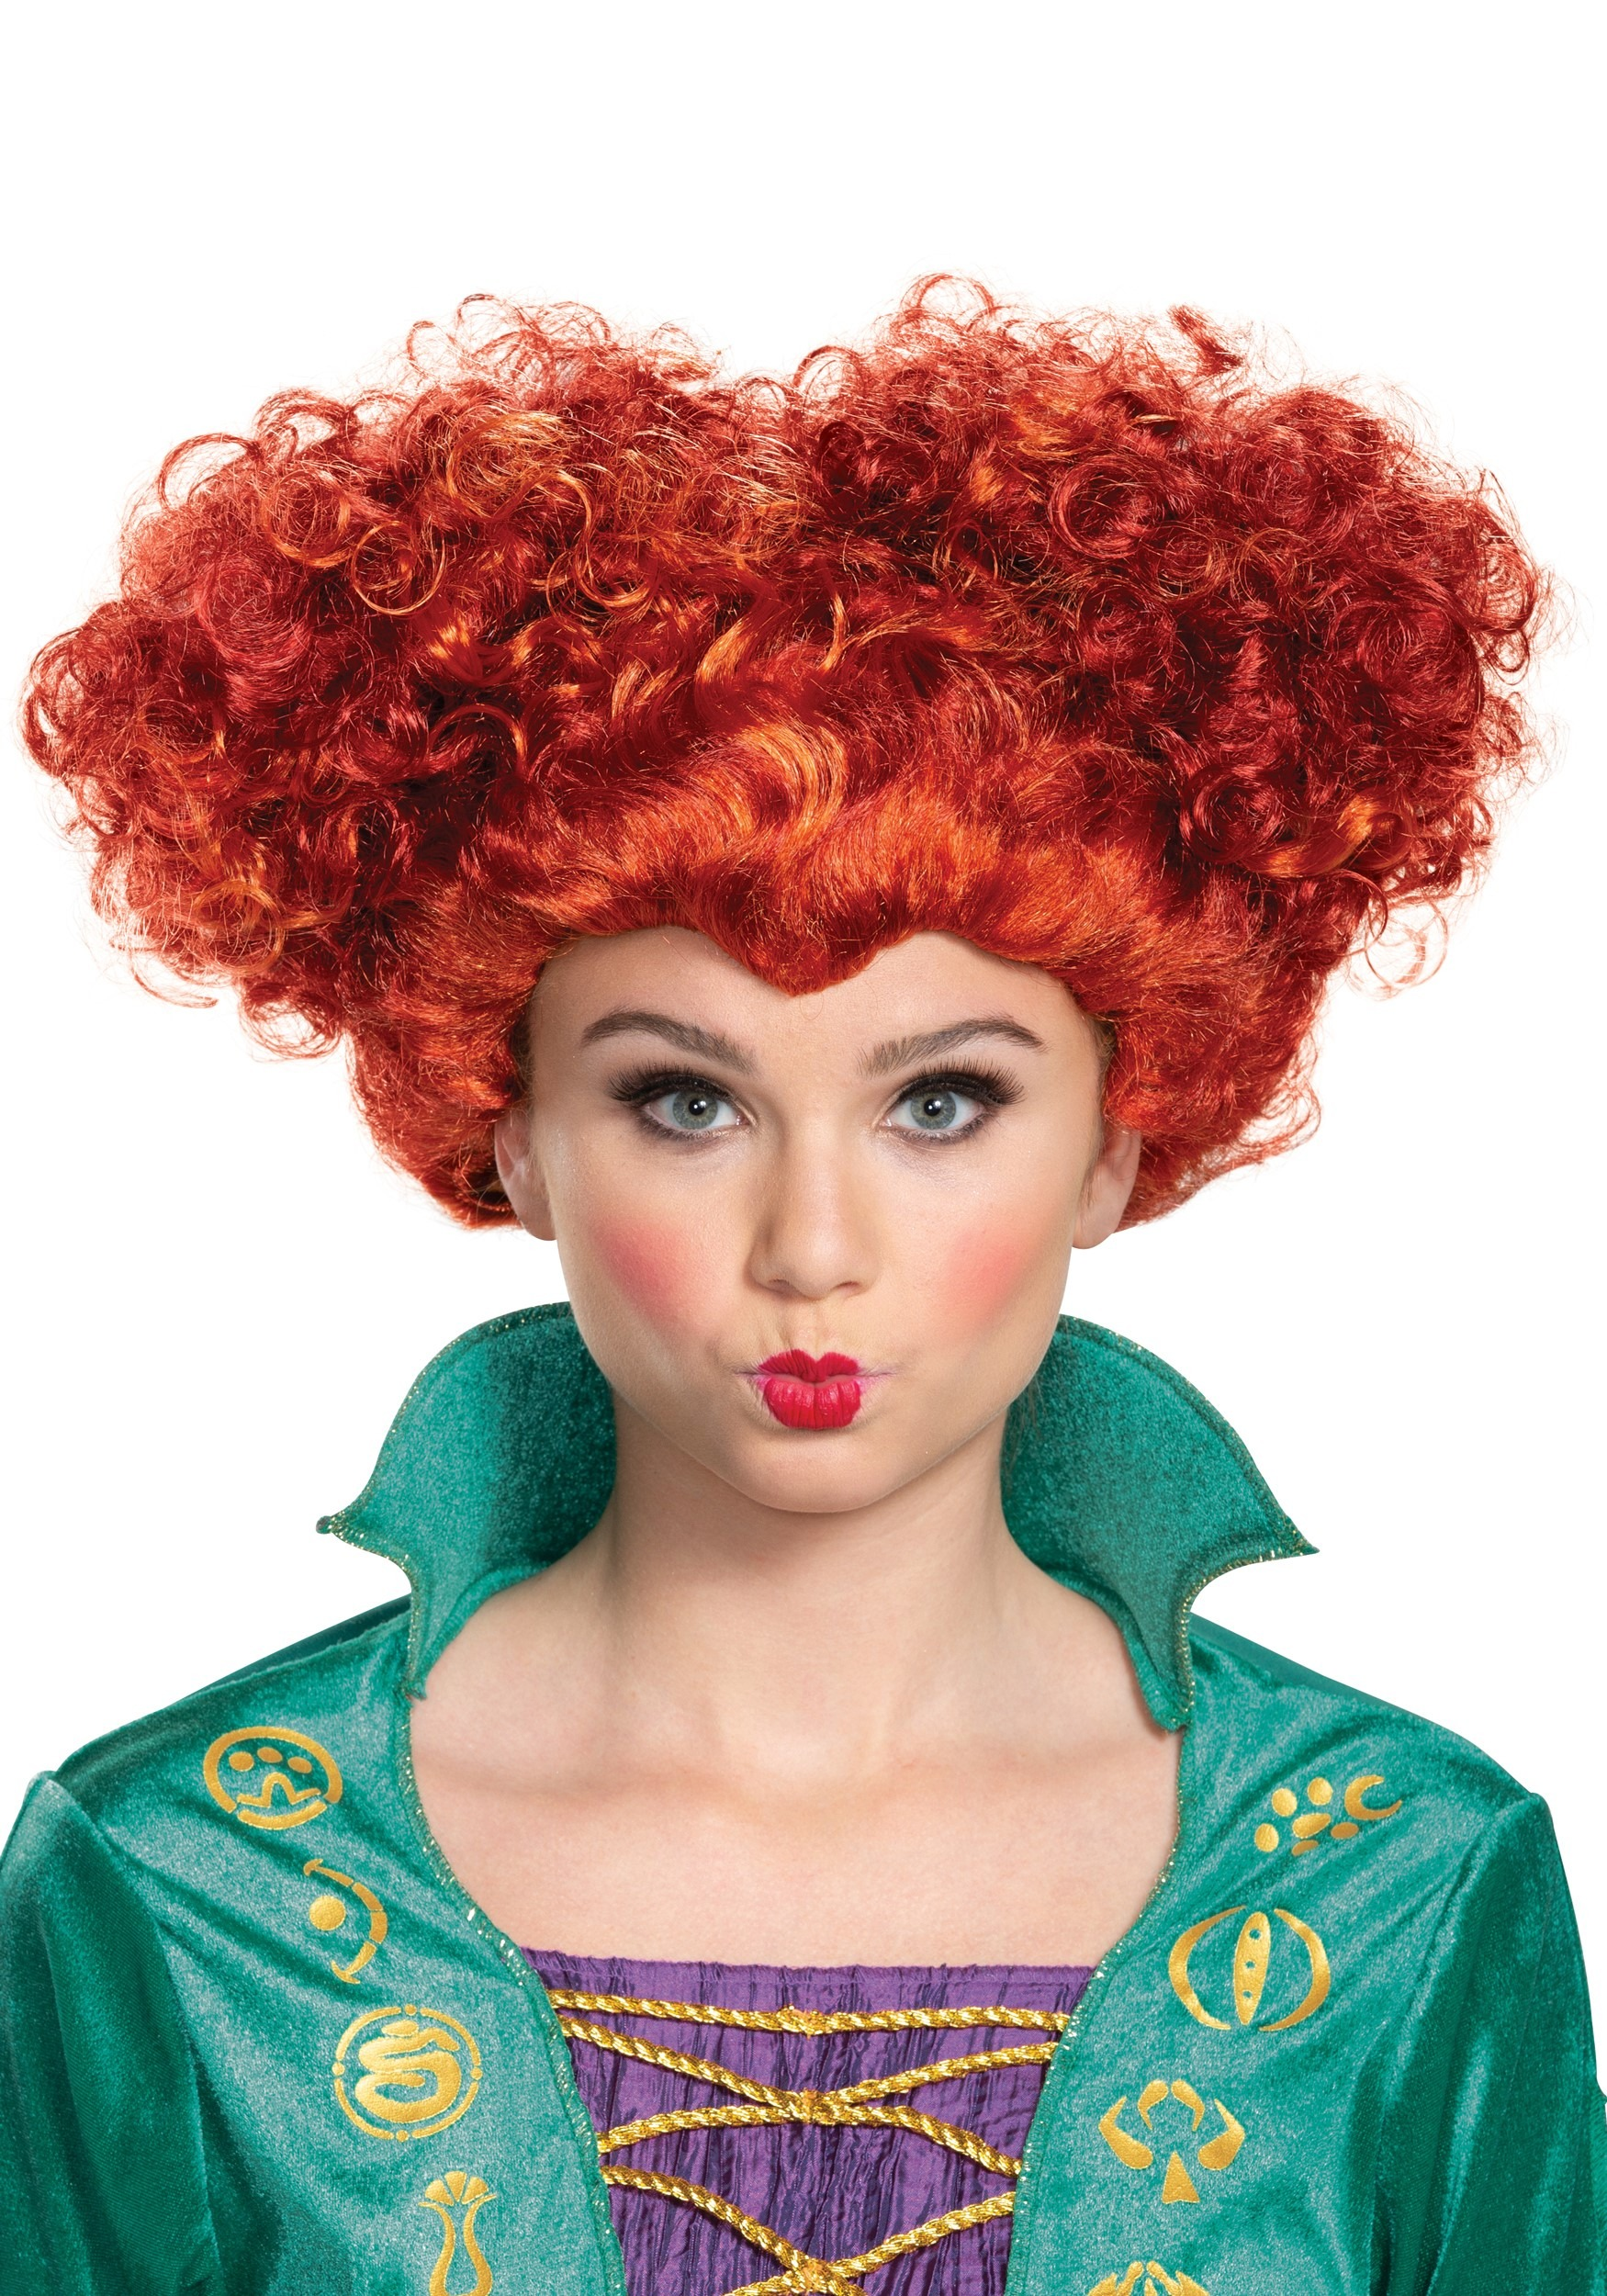 Hocus Pocus Deluxe Wini Wig for Adults